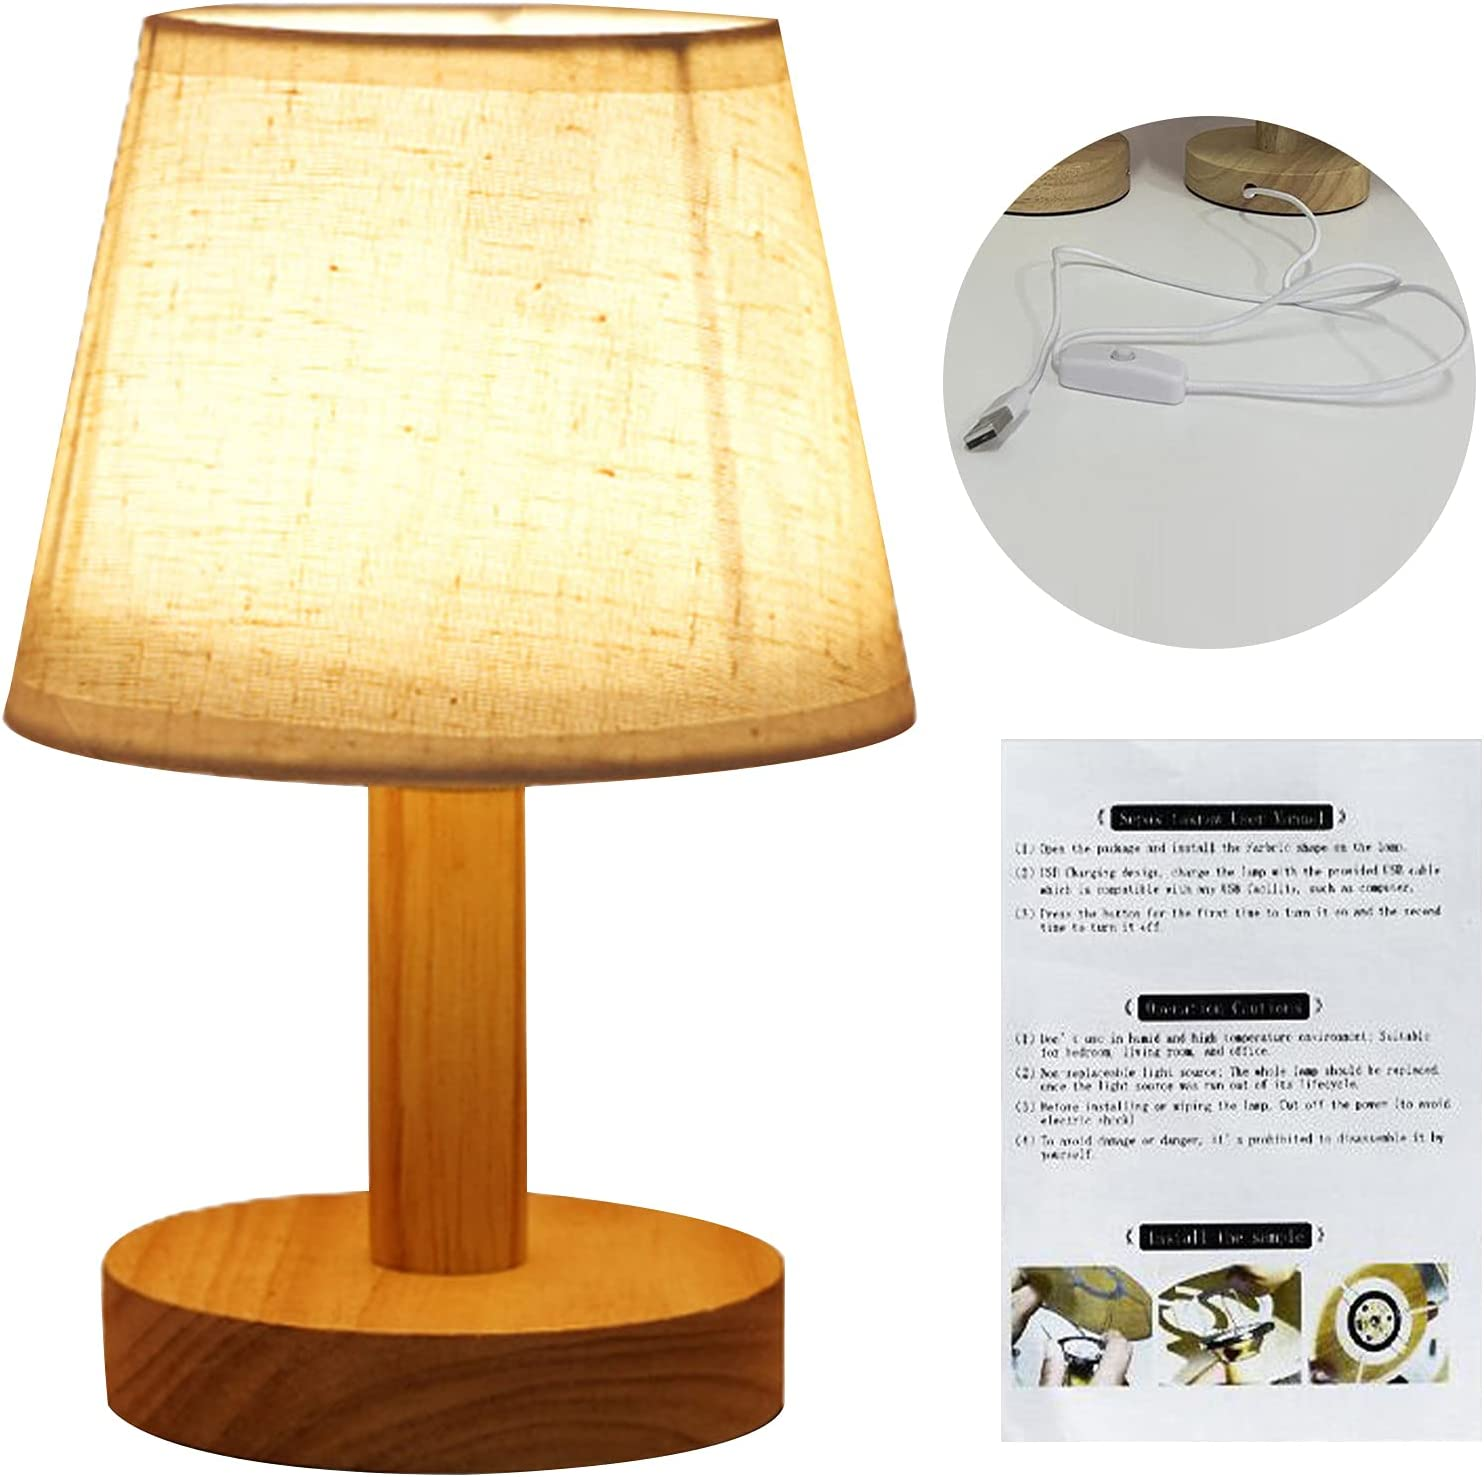 5 popular JENPECH LED Table Lamp Stable Re Fabric Bedside Study Max 67% OFF